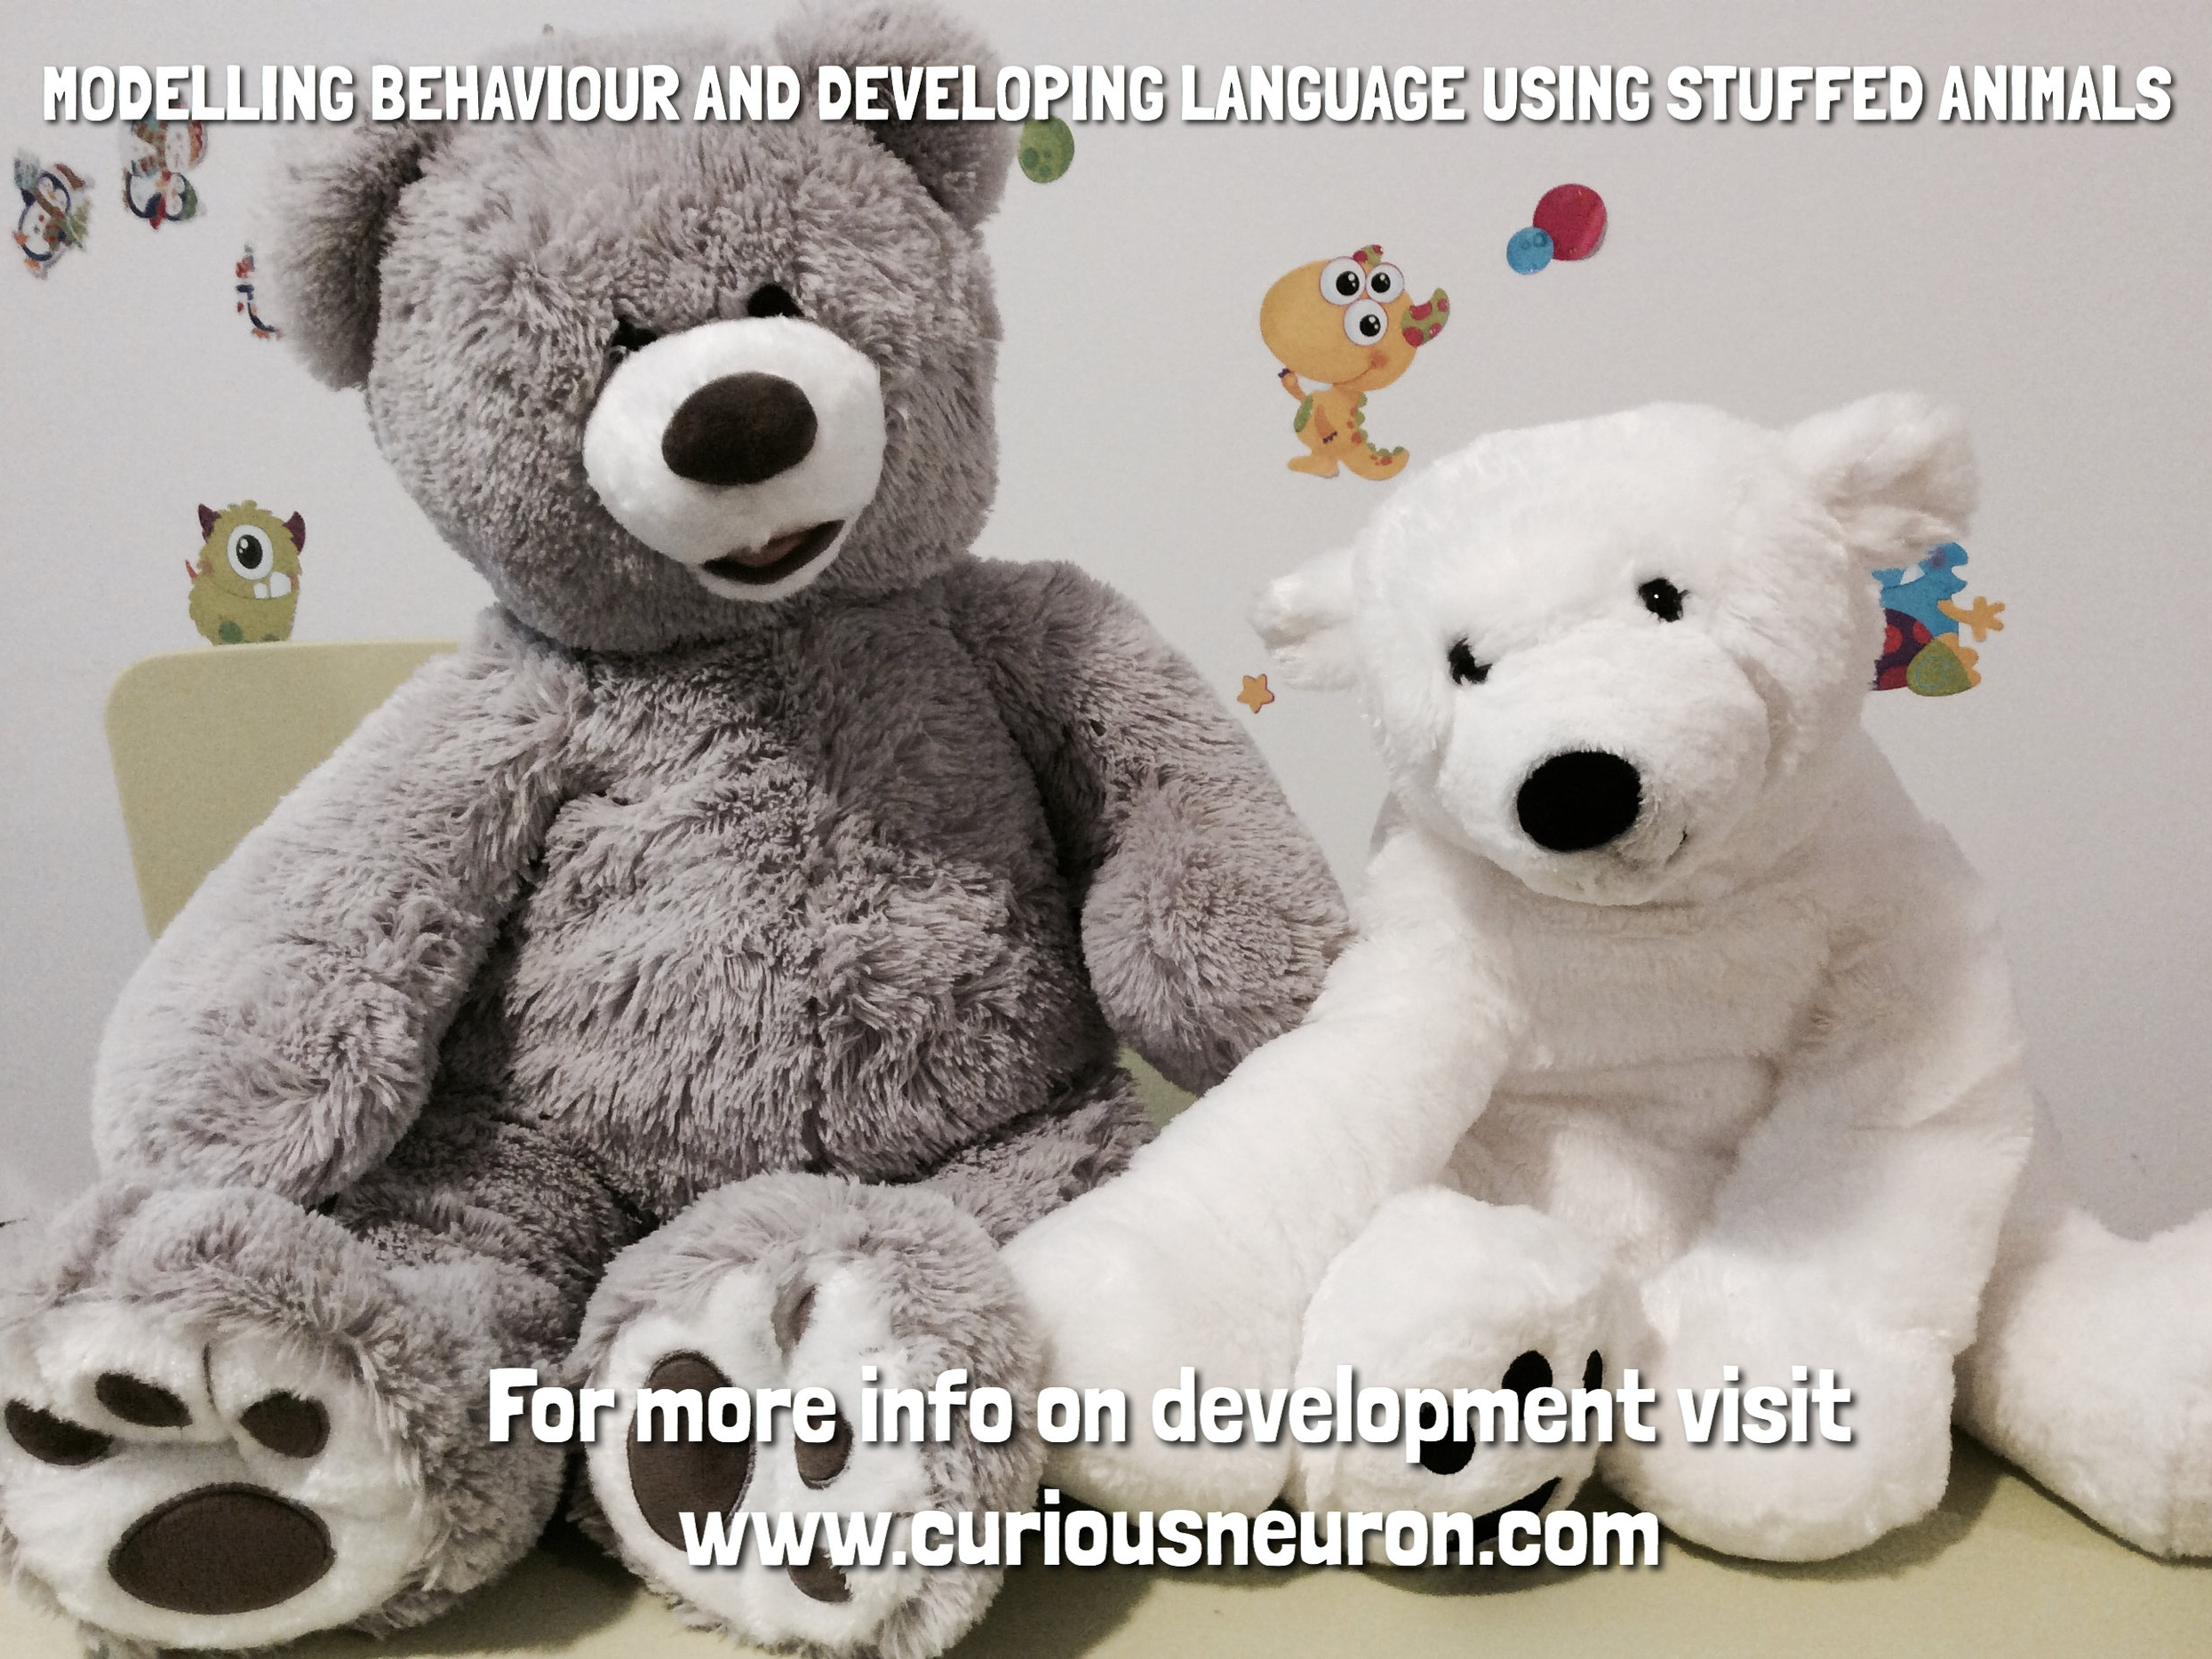 """As of around 6 months, using stuffed animals is a fun way to teach babies lots of language skills. As they get older and begin to learn to share and how to regulation their emotions, this can be modelled by with their stuffed animals as well.  I like to introduce words that I can associate with an action such as """"hug"""", """"high 5"""", or """"be gentle"""" (as I pat the bear). I also repeat, """"hi"""" and """"bye-bye"""" when we are with the bears. Since being alone with a baby might feel weird talking, you can talk to the bears! This increases the dialogue between you and your baby."""